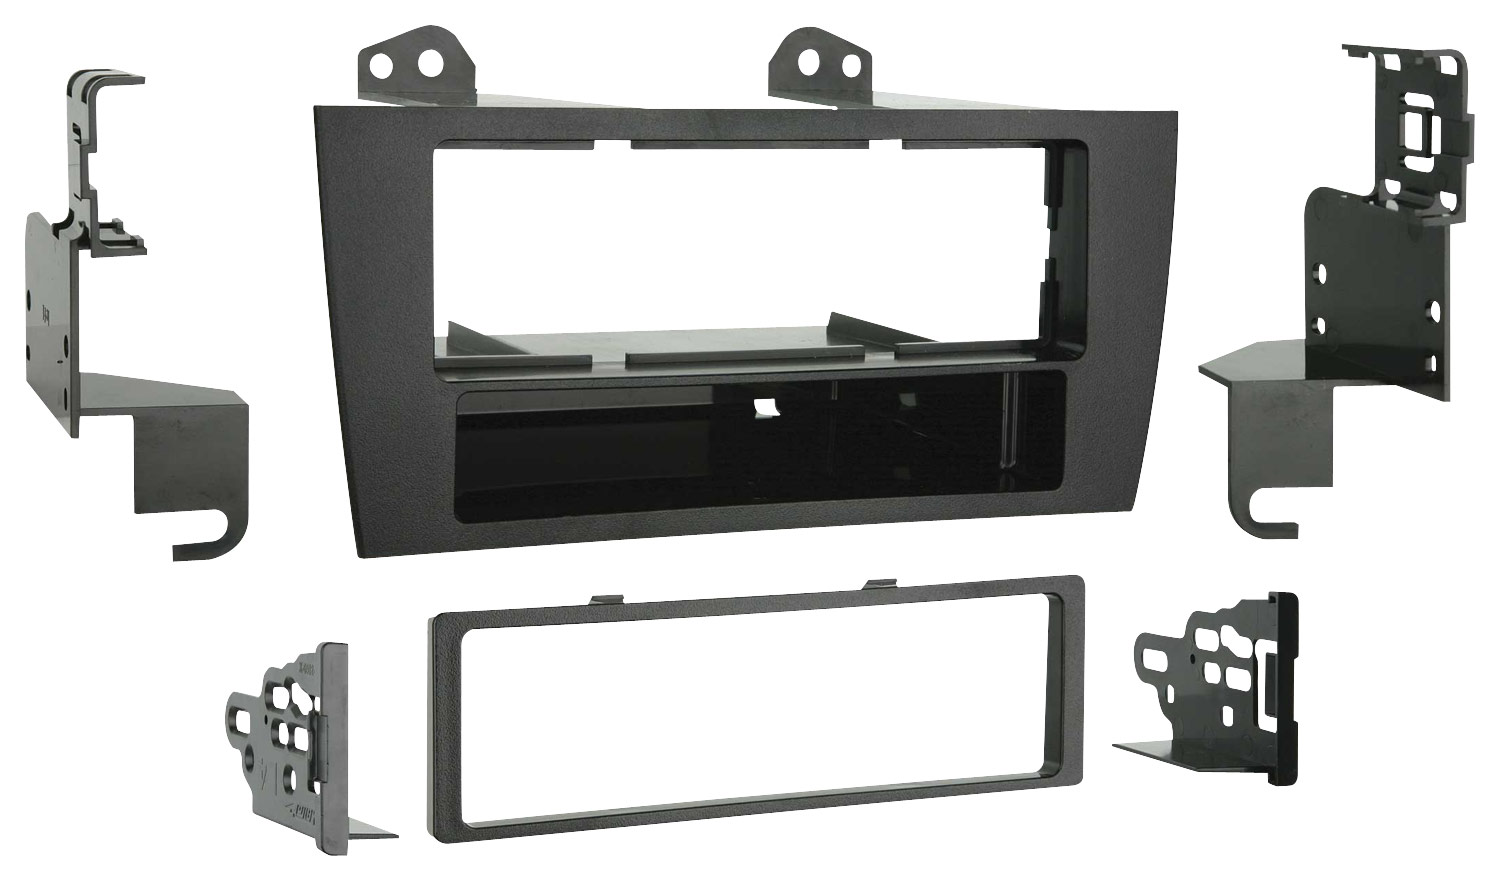 hight resolution of metra dash kit for select 1997 2001 lexus es 300 black 99 8155 best buy